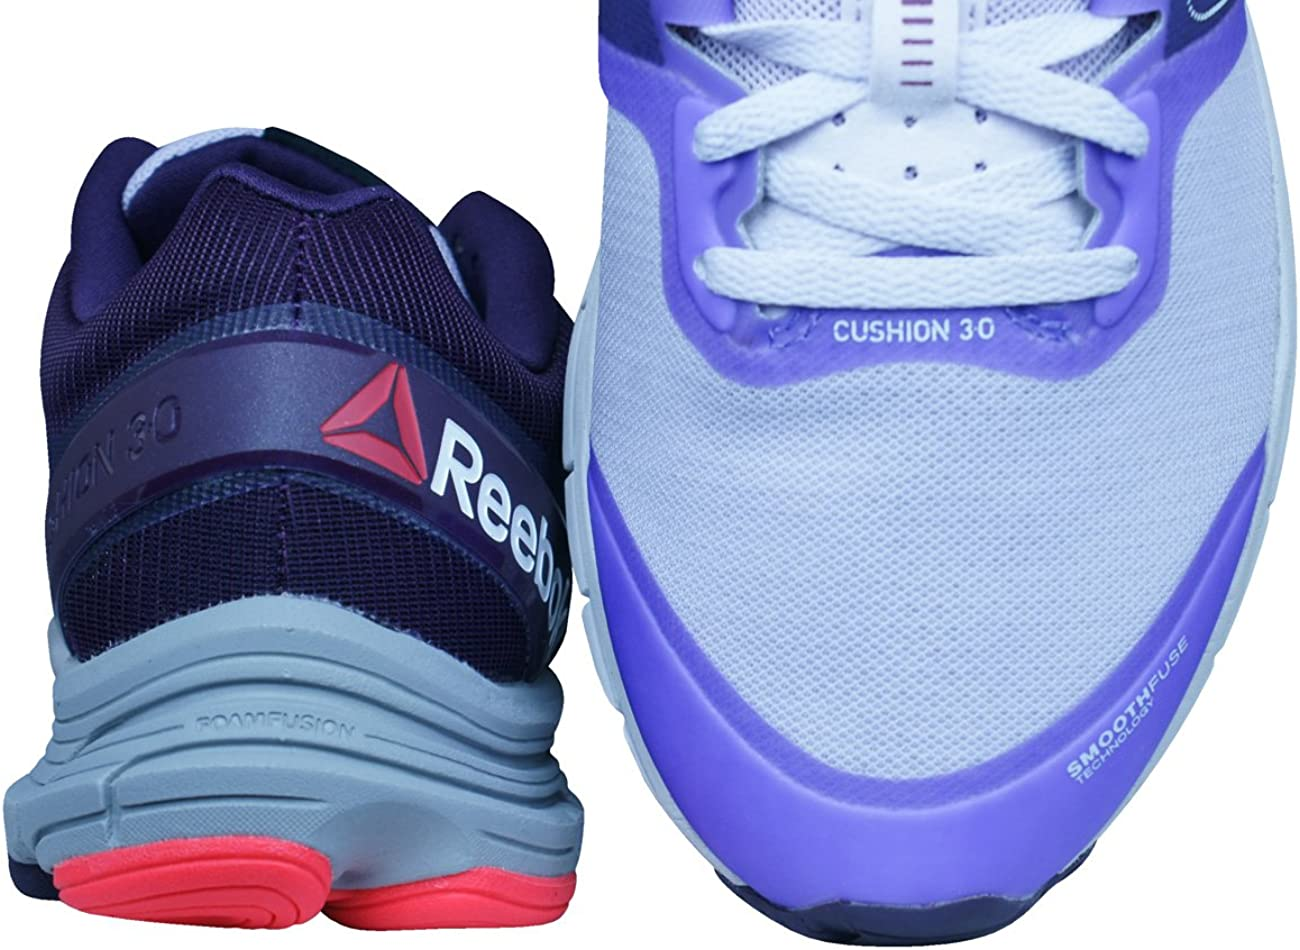 Reebok One Cushion 3.0 M49536, Basket: : Chaussures